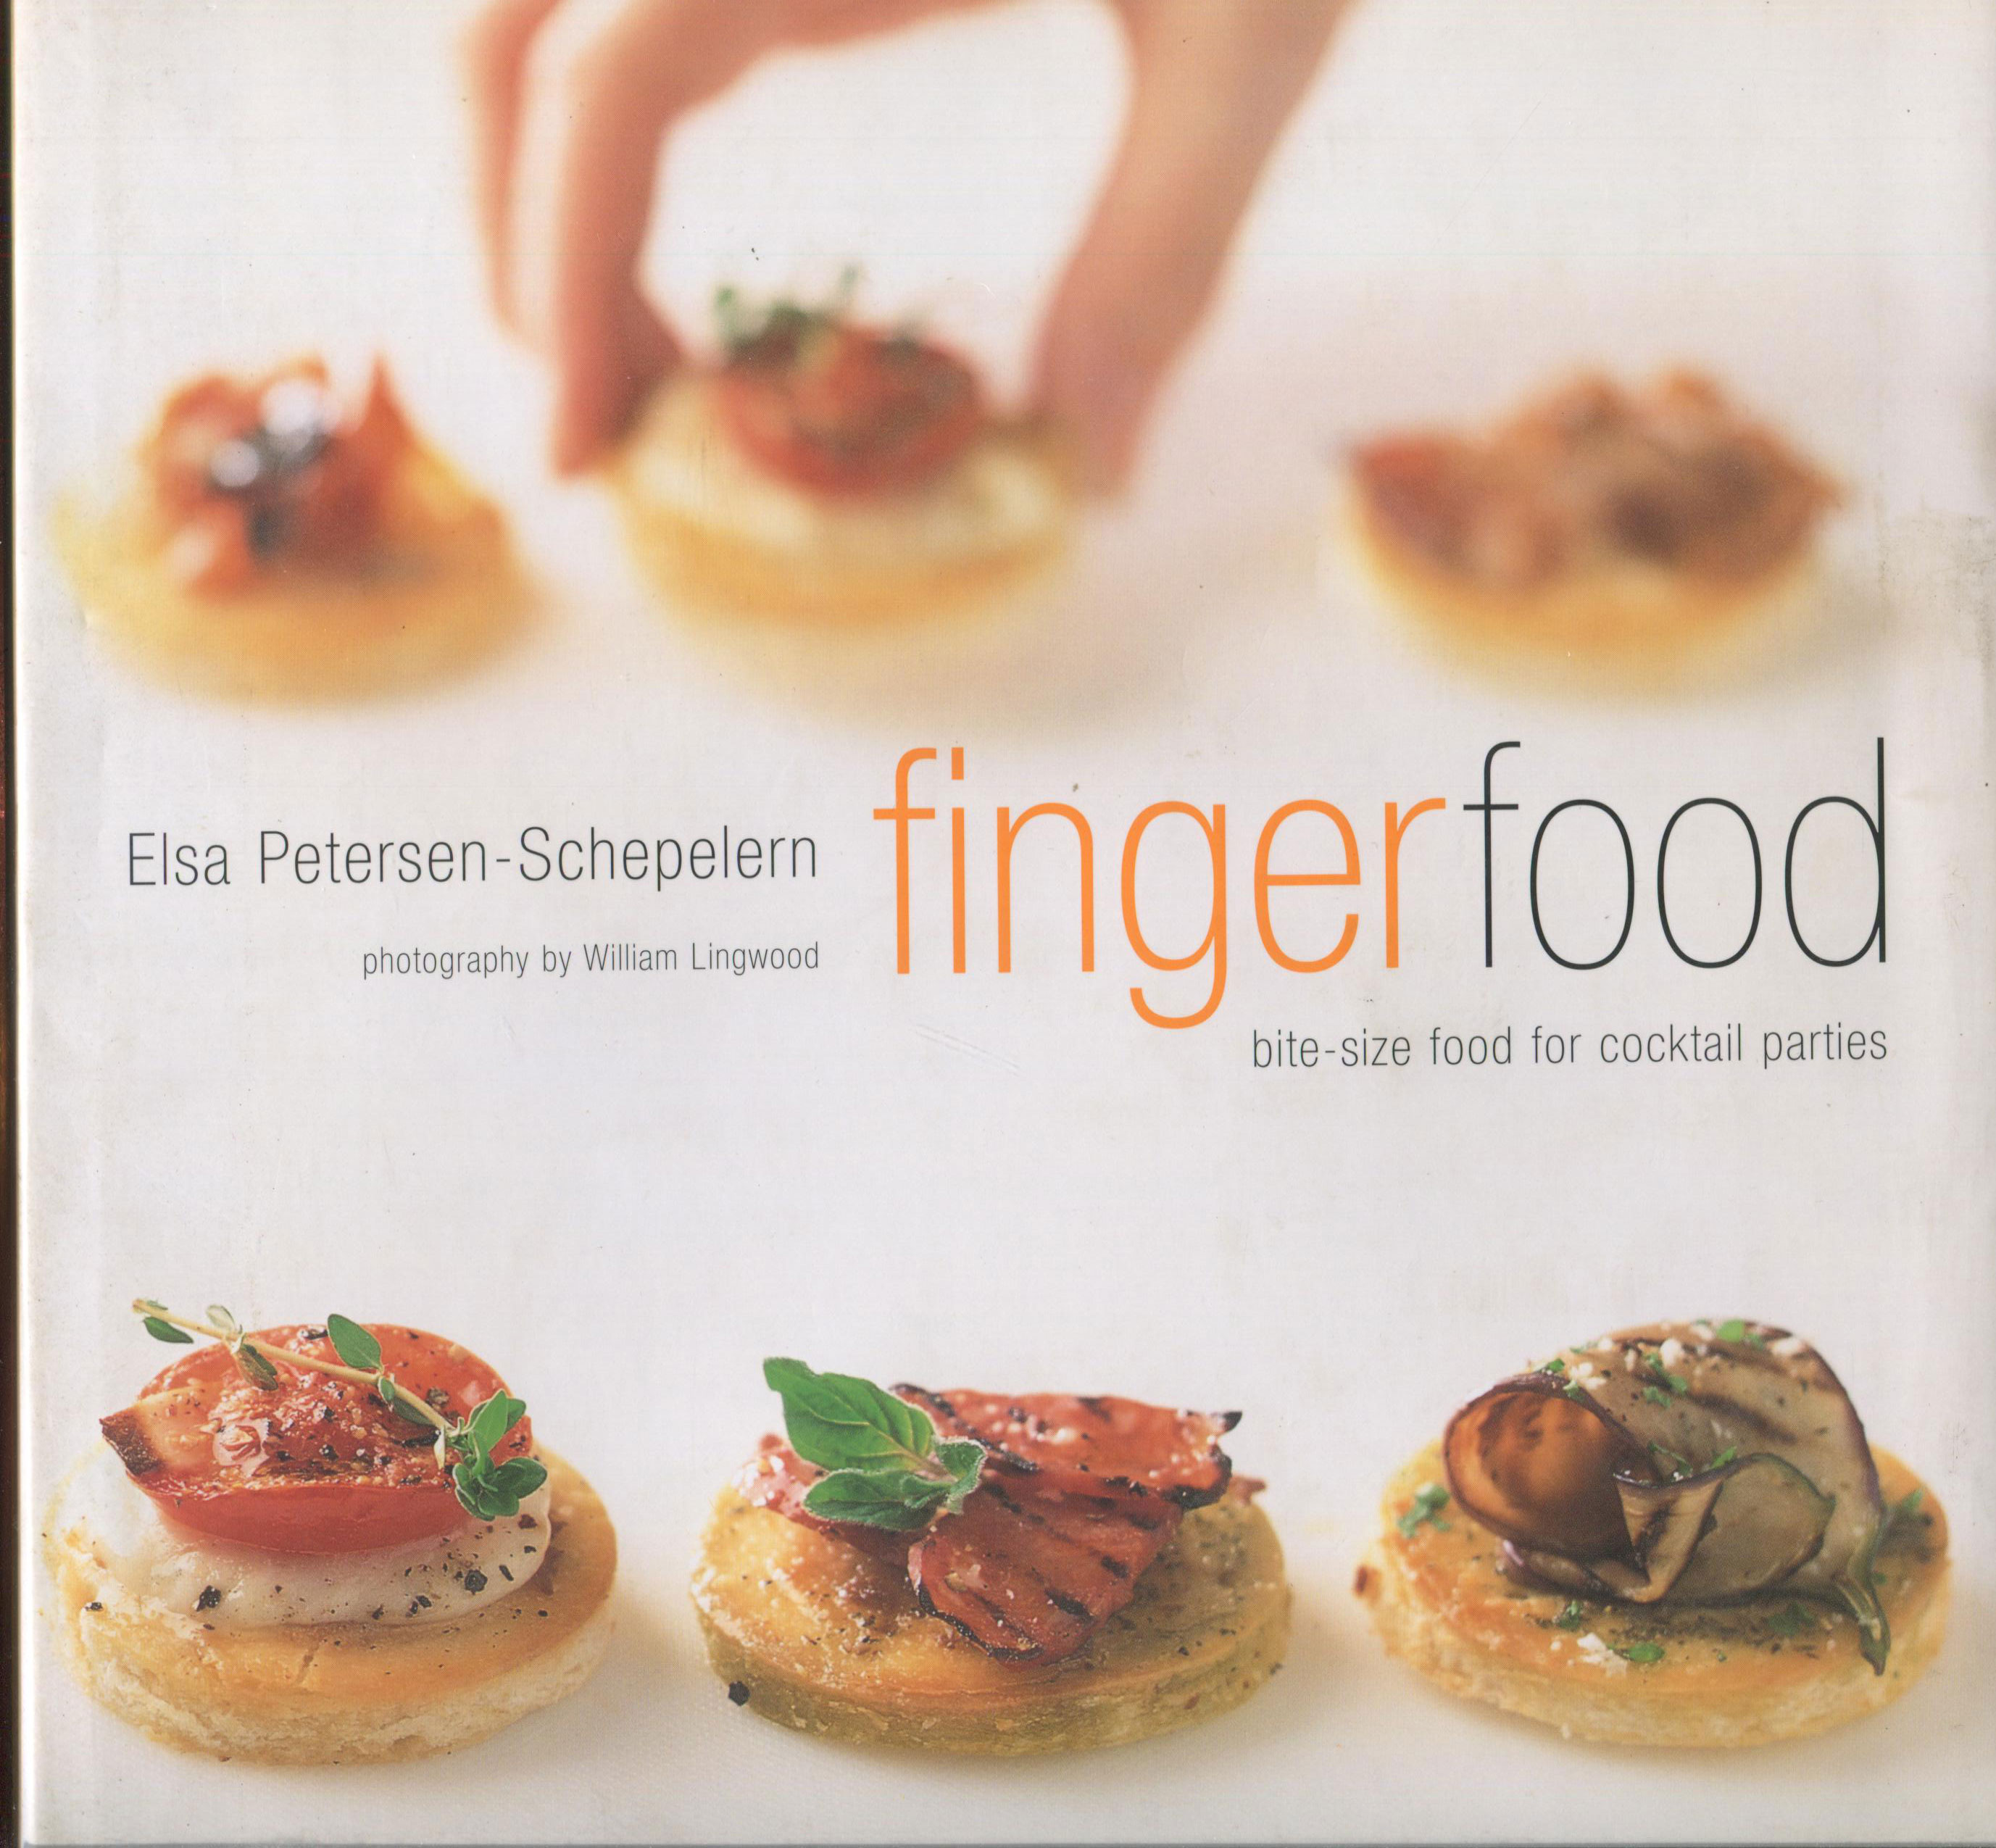 Cookbook Review: Fingerfood by Elsa Petersen-Schepelern